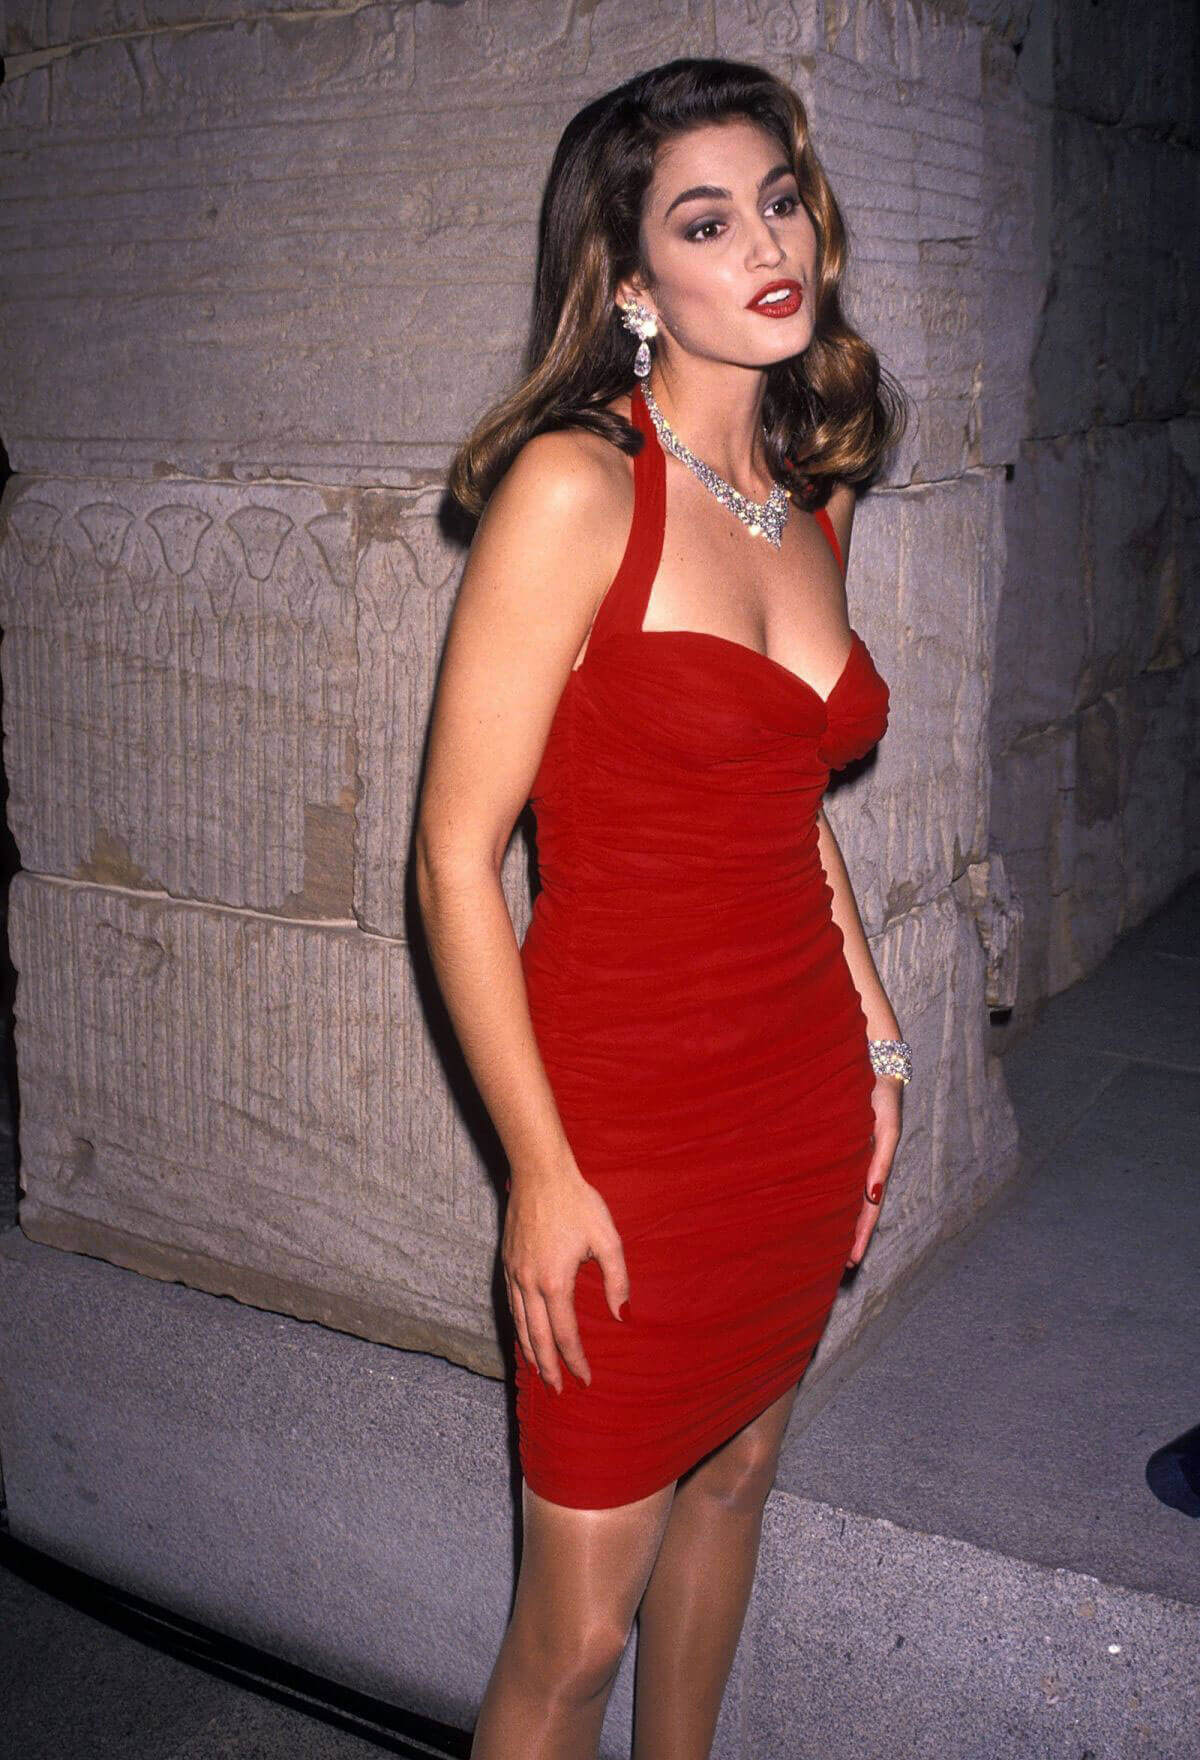 Cindy Crawford Poses For Red Dress And Diamonds At Revlon